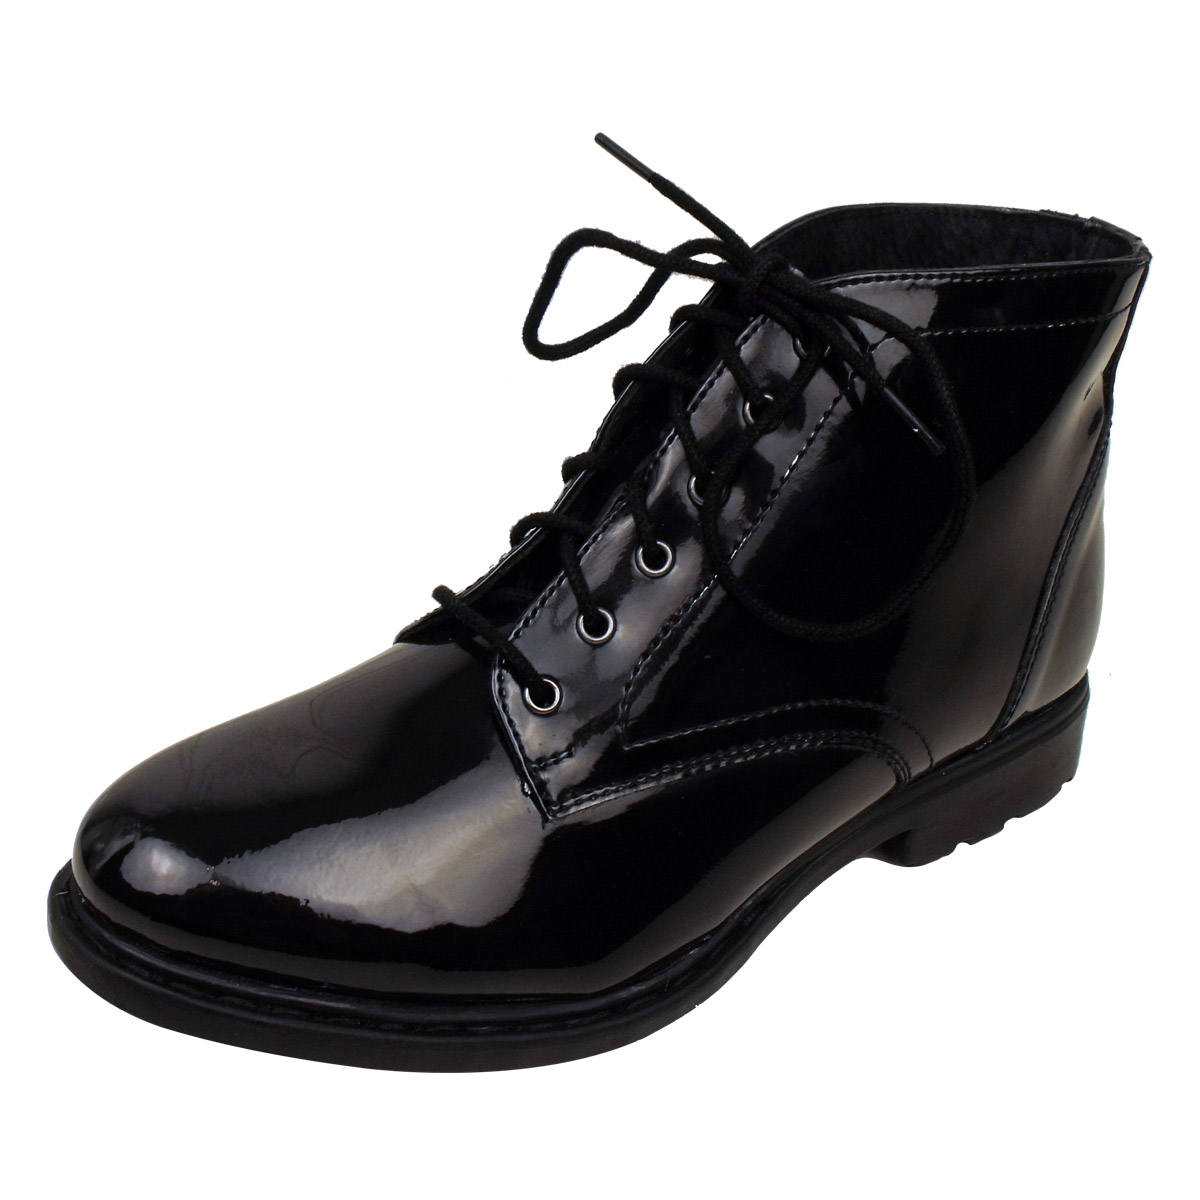 Pattens were worn outdoors over a normal shoe, had a wooden or later wood and metal sole, and were held in place by leather or cloth bands. Pattens functioned to elevate the foot above the mud and dirt (including human effluent and animal dung) of the street, in a .